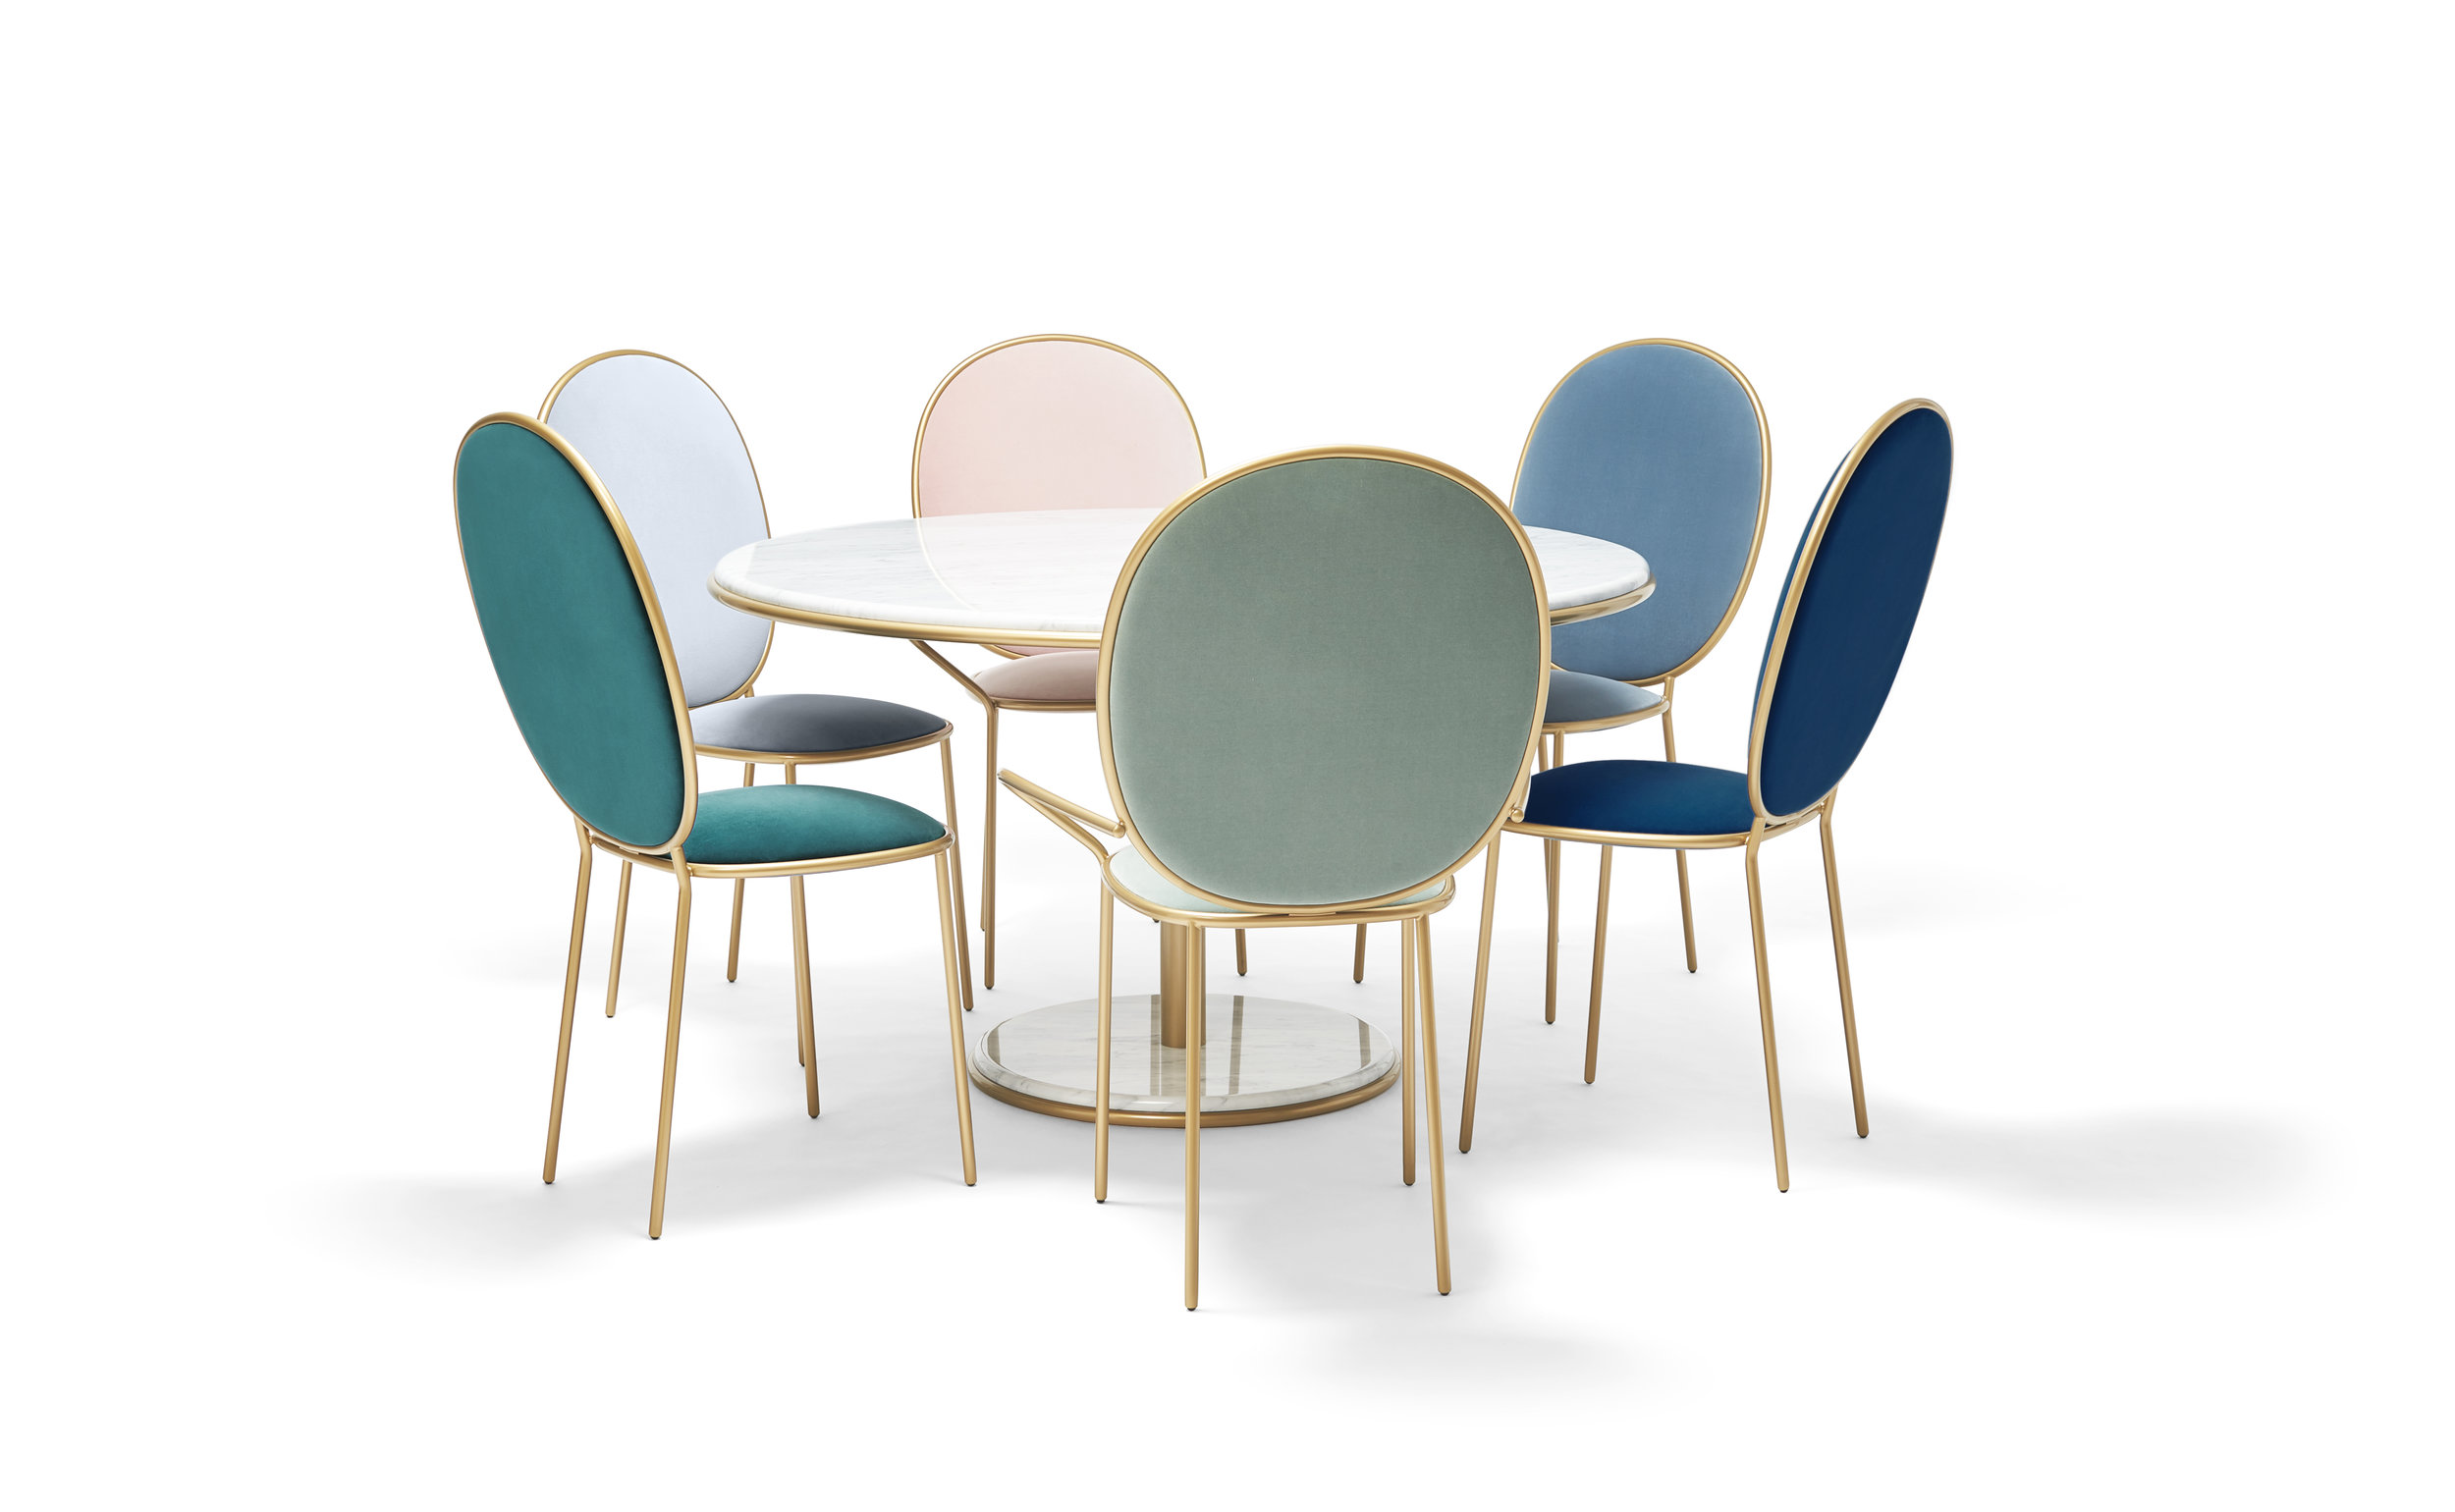 Groupshot Stay Dining Table 1m20 - Carrara, Stay Dining Chairs - Sé Velvet Lago, Indigo, Avio, Pervenche, Ocean, Rose Thé.jpg